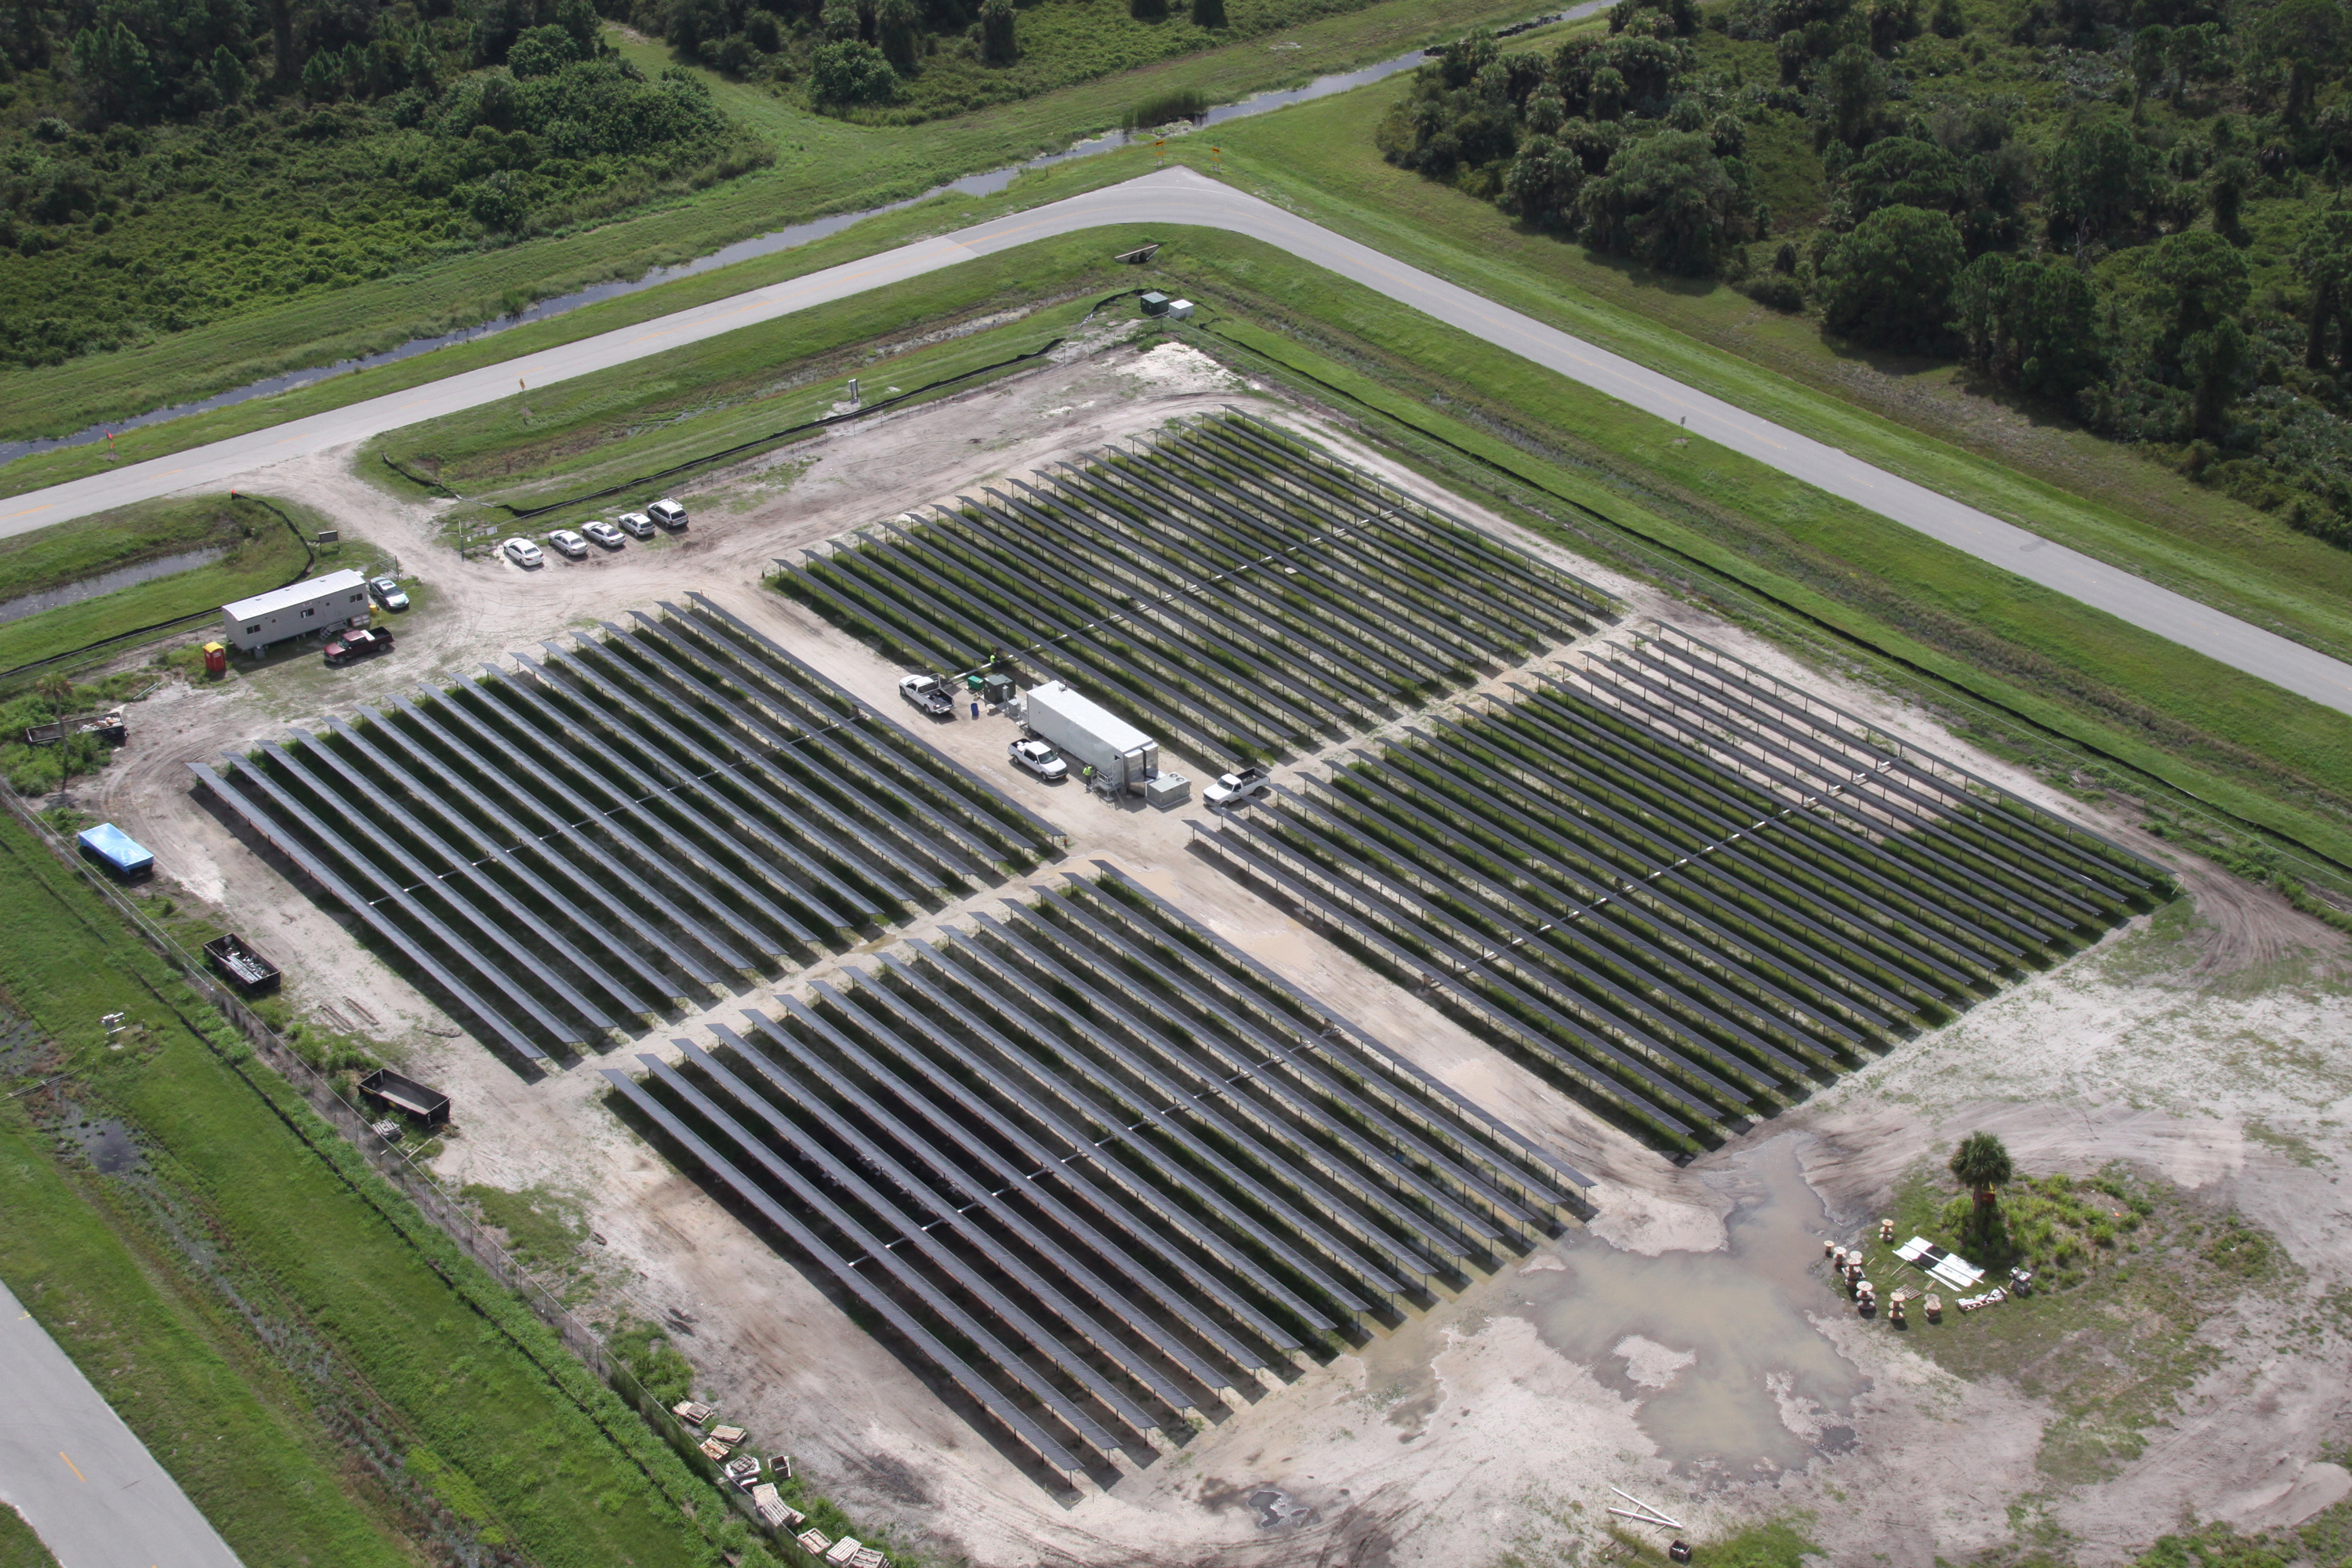 File:Solar power system at Kennedy Space Center.jpg - Wikimedia ...